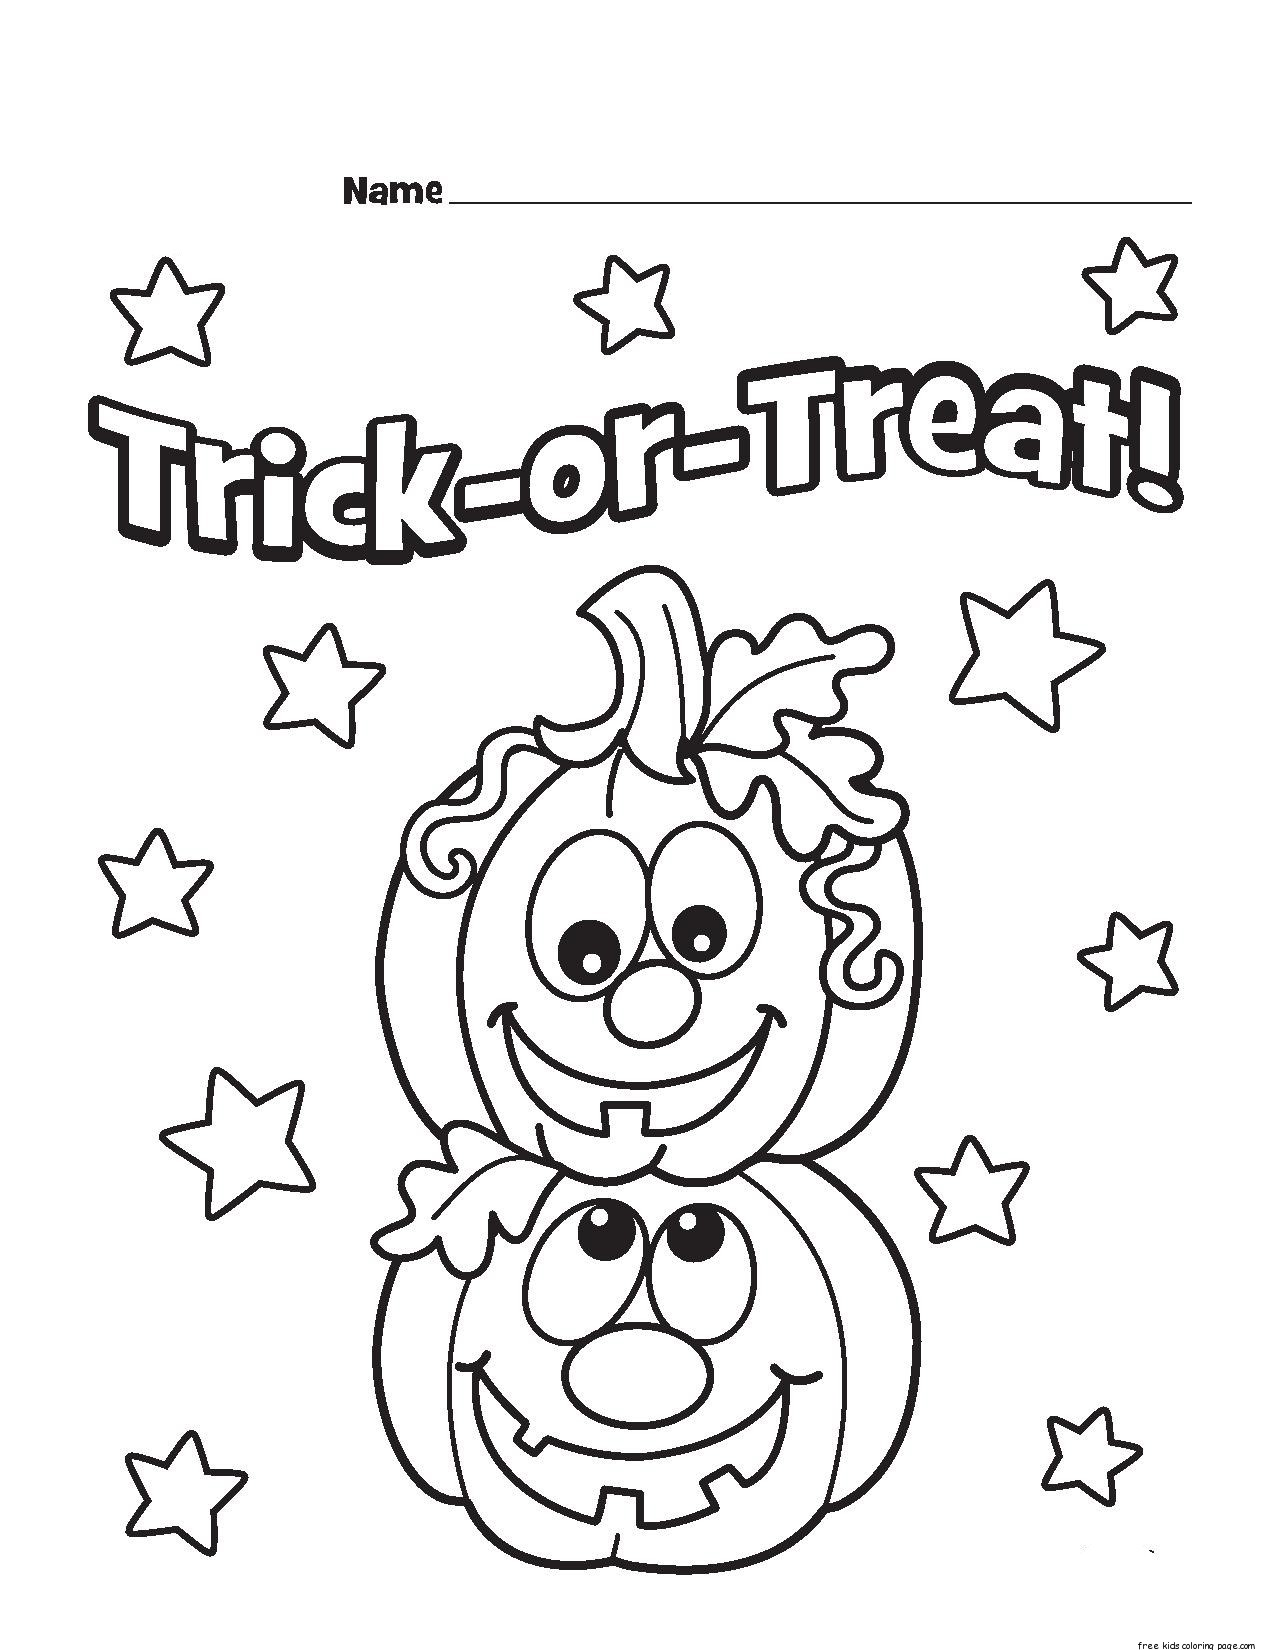 Printable Trick Or Treat Pumpkins Designs Coloring